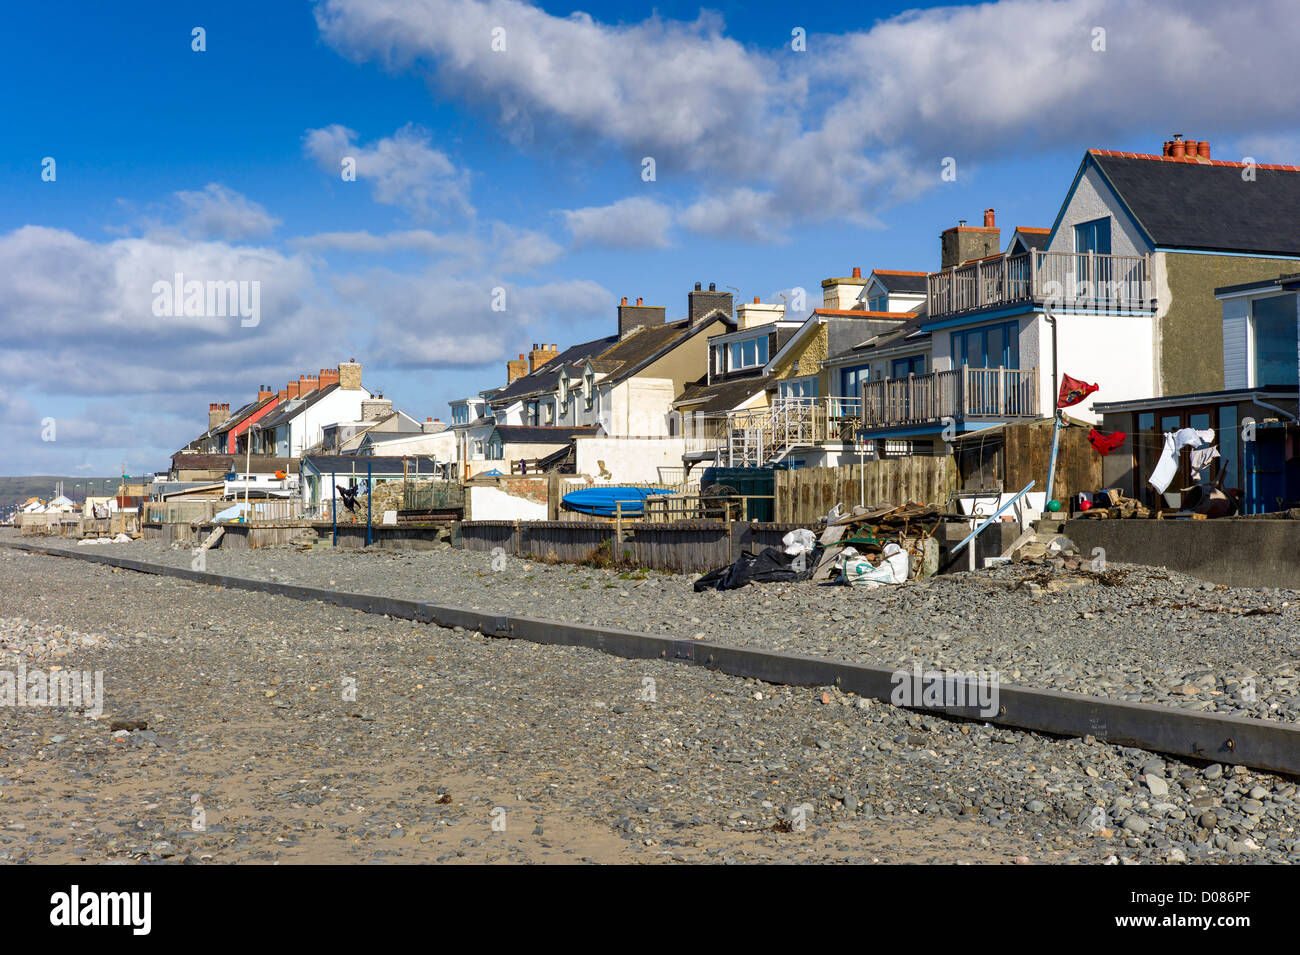 colourful coastal village houses at Borth mid Wales whose gardens back onto the beach, sea defenses, washing lines, - Stock Image